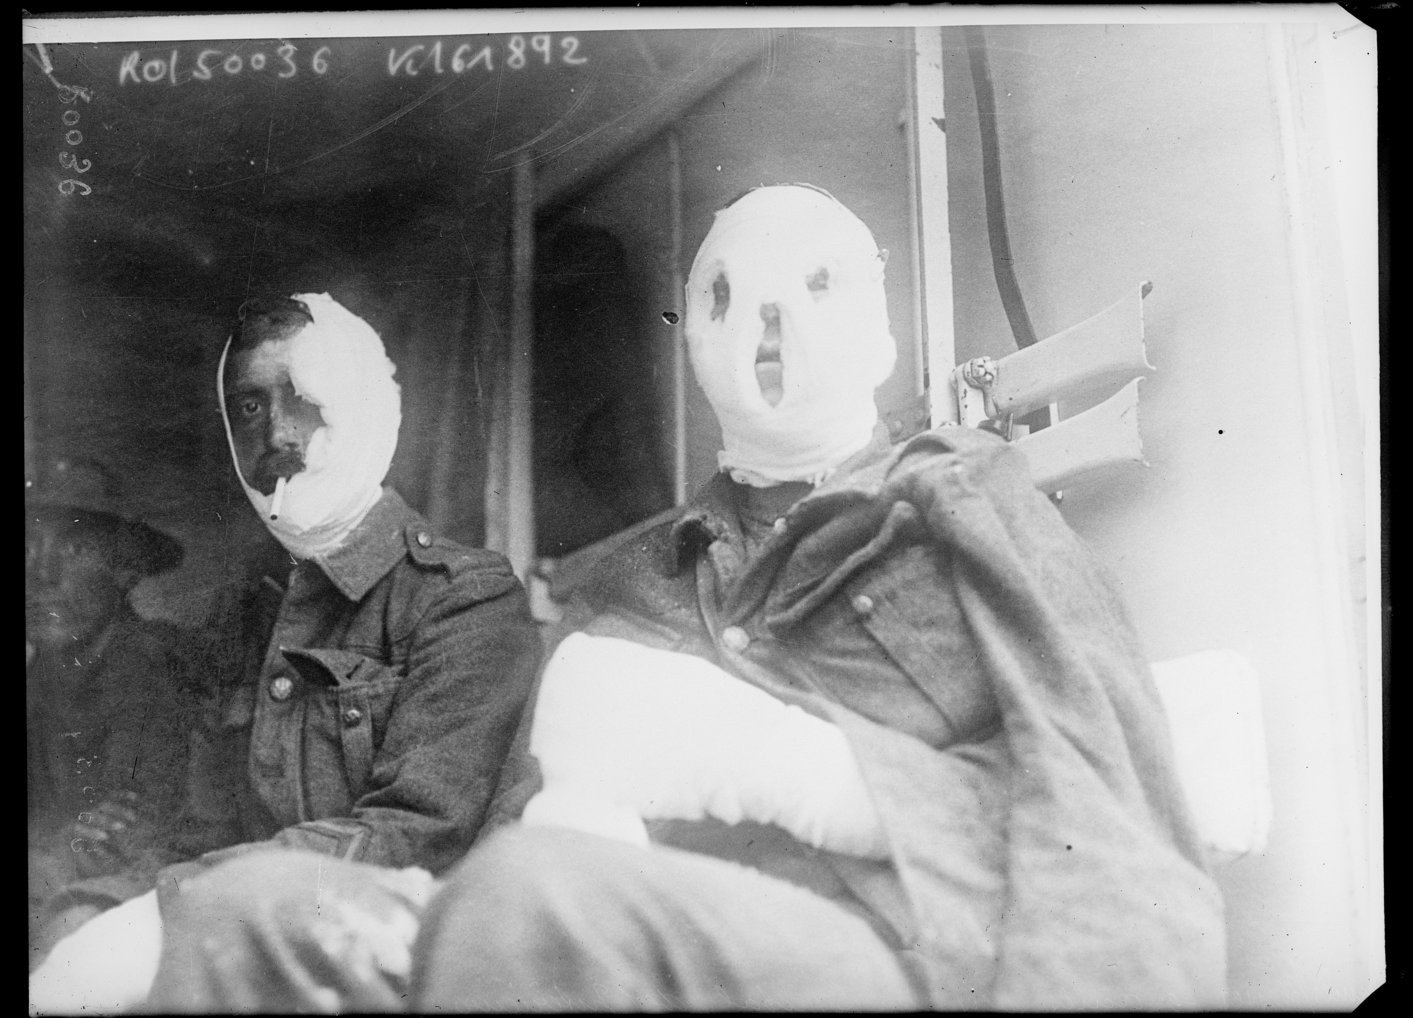 Seriously wounded soldiers are transported to a hospital behind the lines., Agence Rol. Agence photographique 1917, French National Library - Bibliothèque Nationale de France, Public Domain Mark